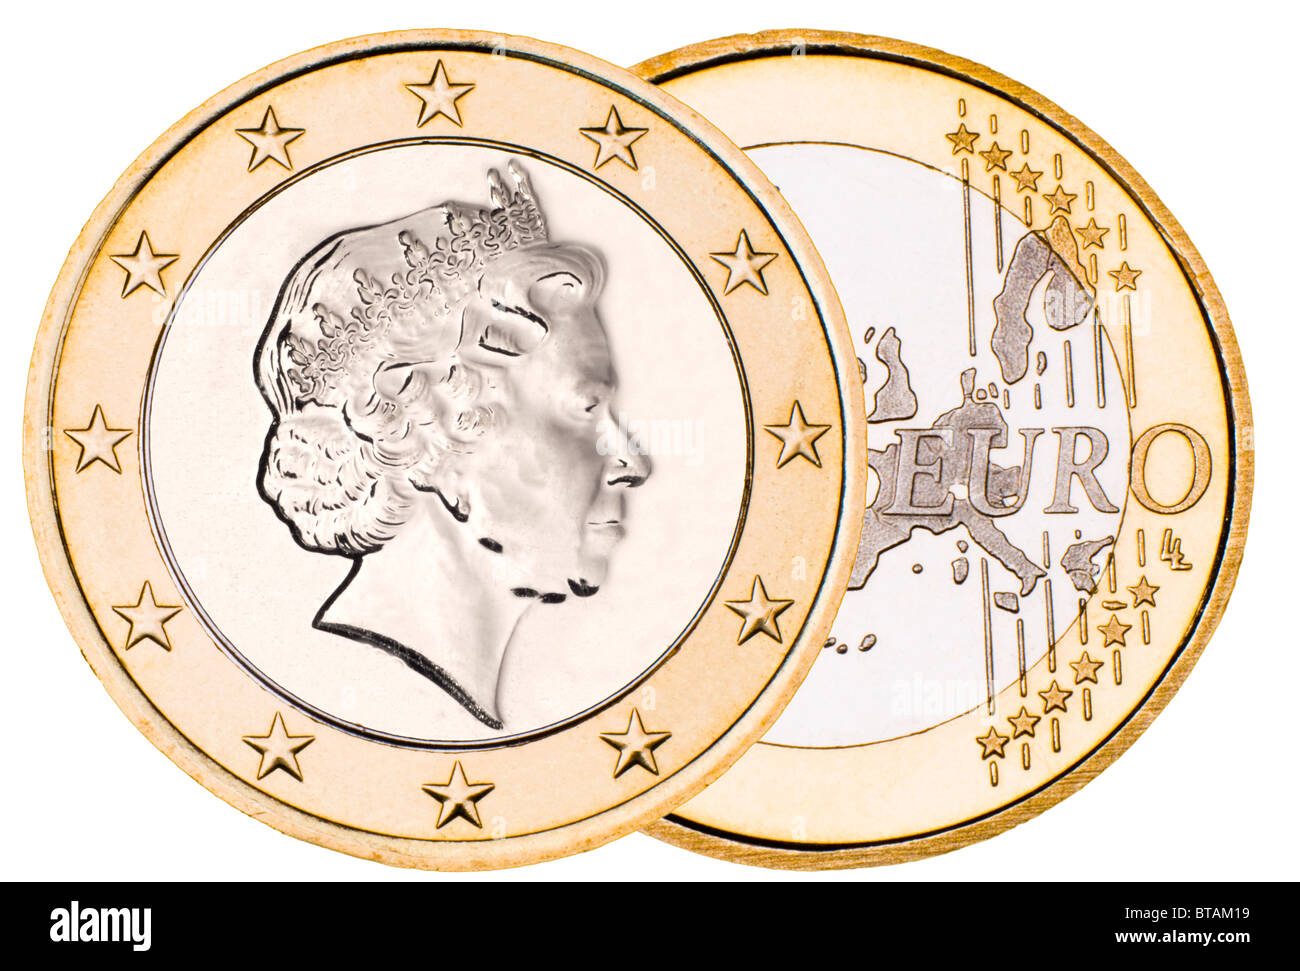 Composite 'British Euro' with queens head on Euro reverse - Stock Image